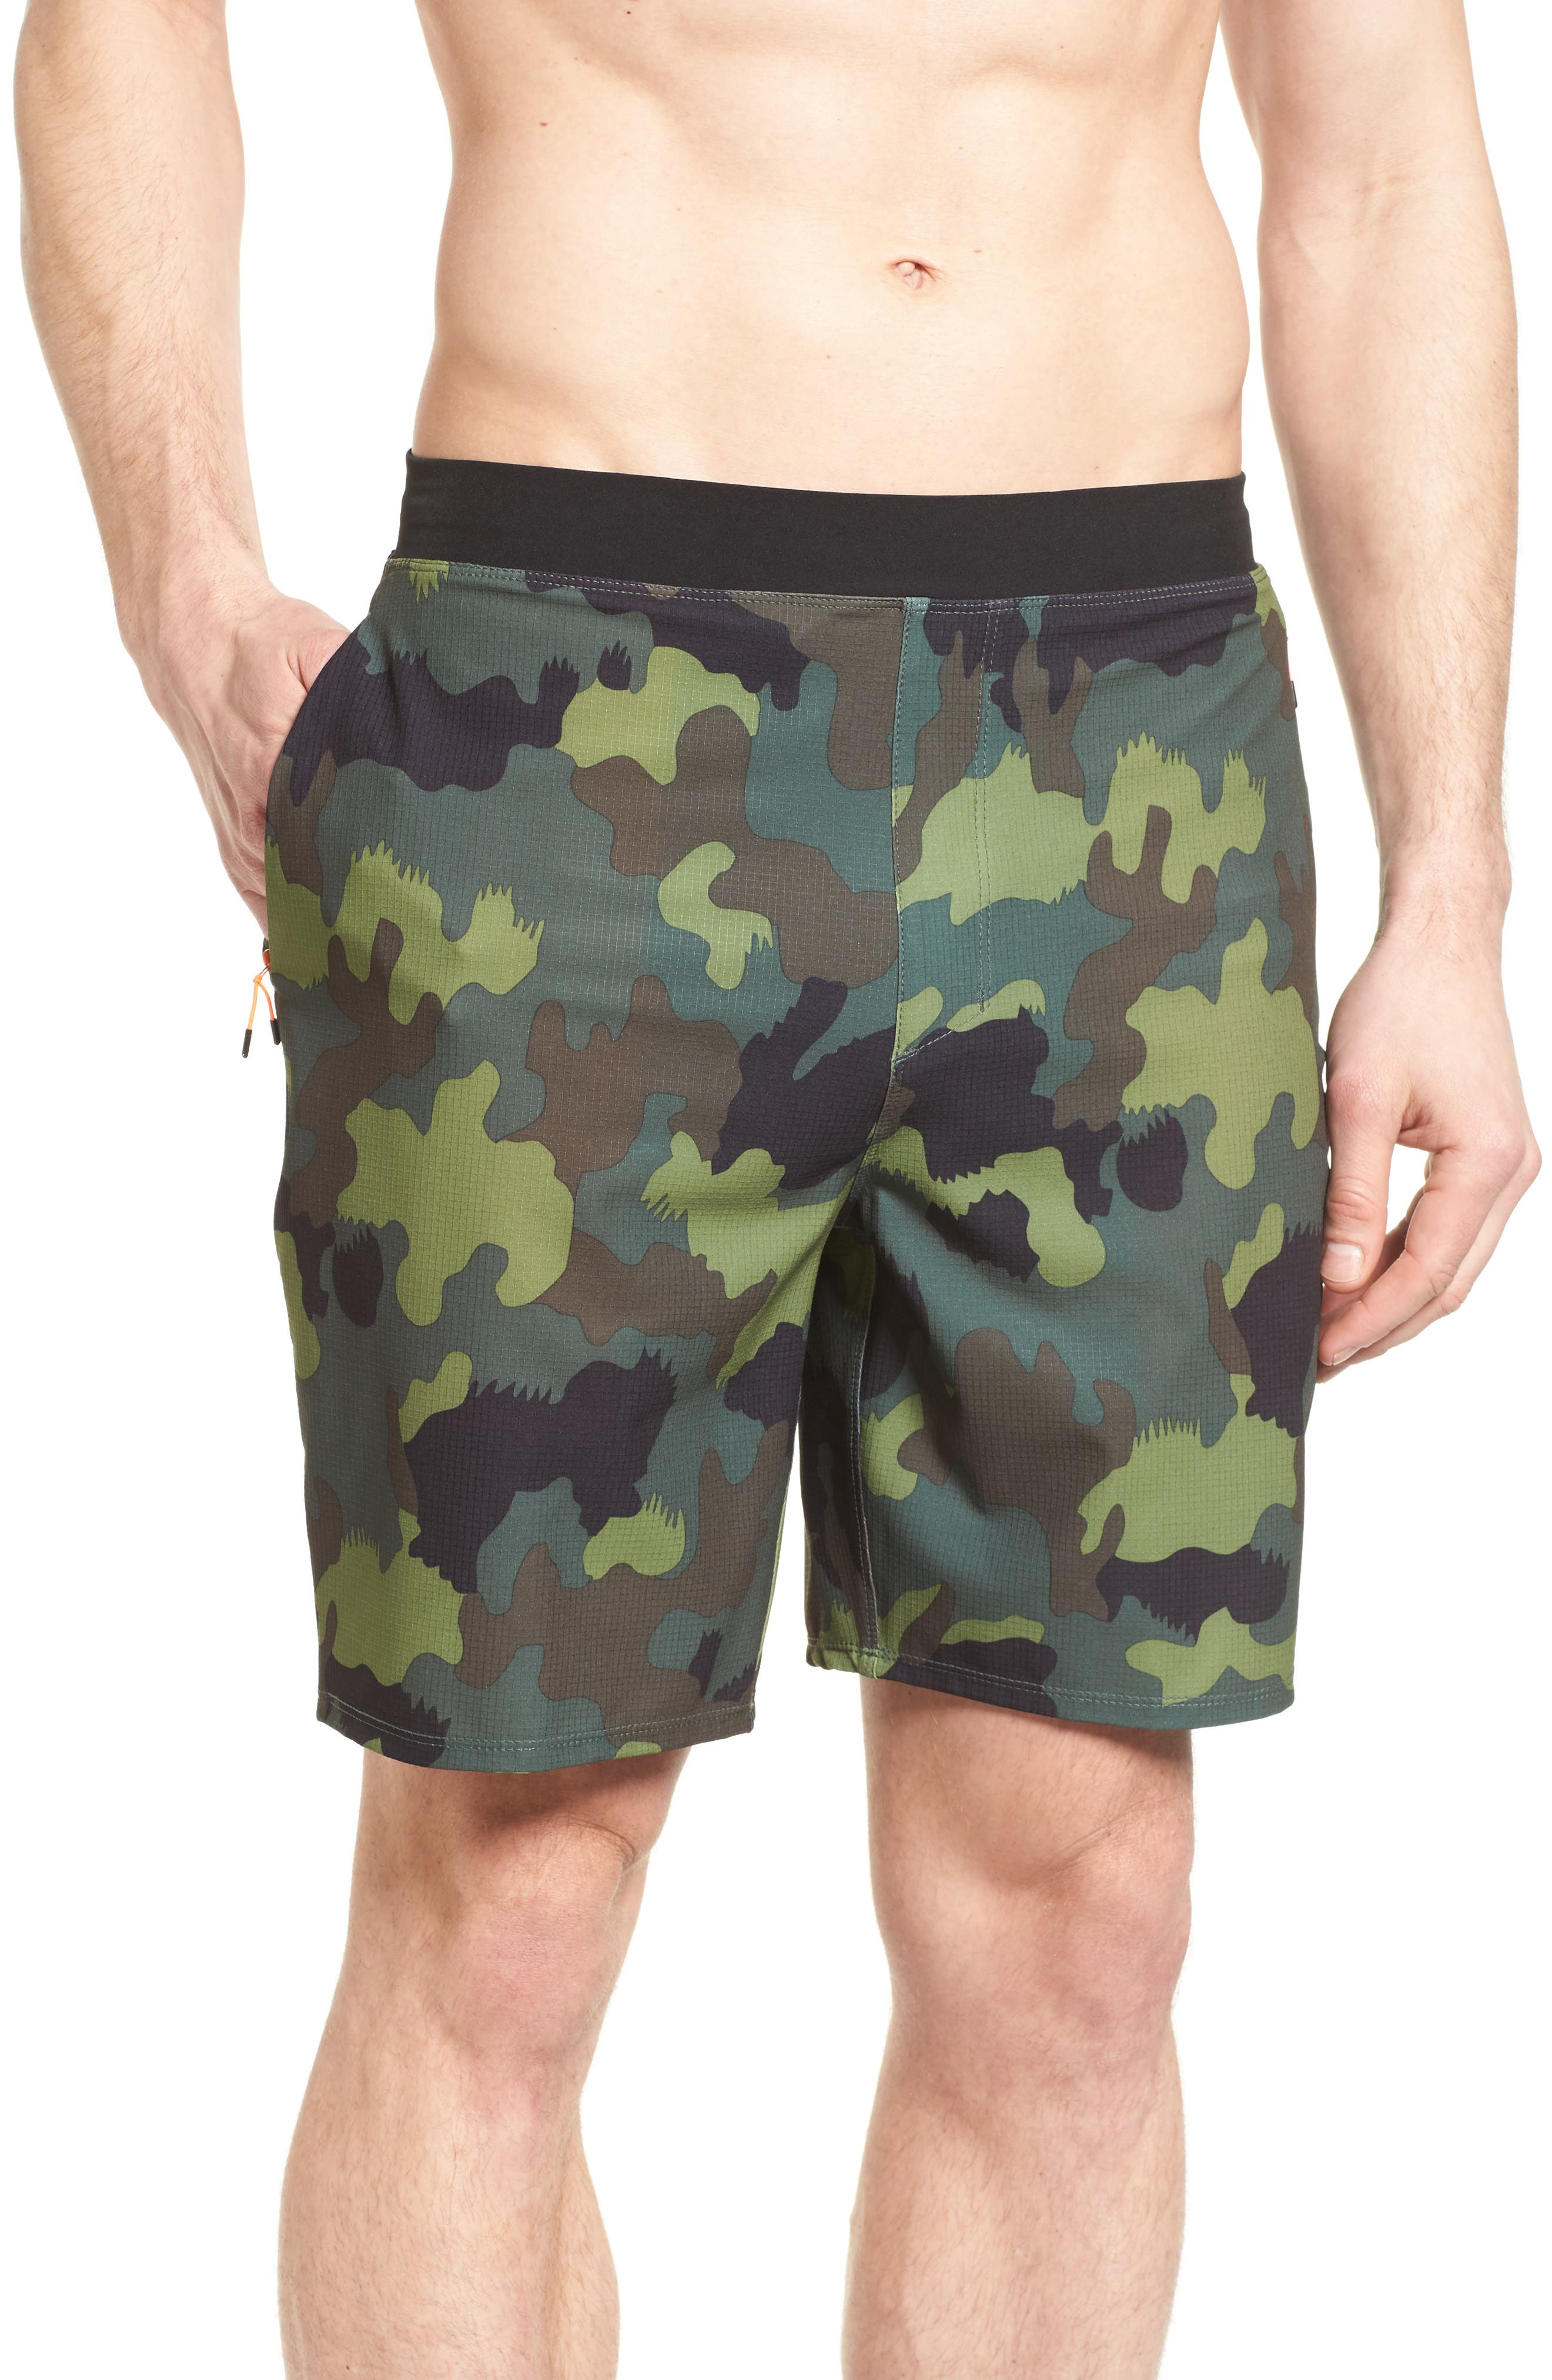 Alpha Trainer Plus Threat Training Shorts,                             Main thumbnail 1, color,                             Camoflague